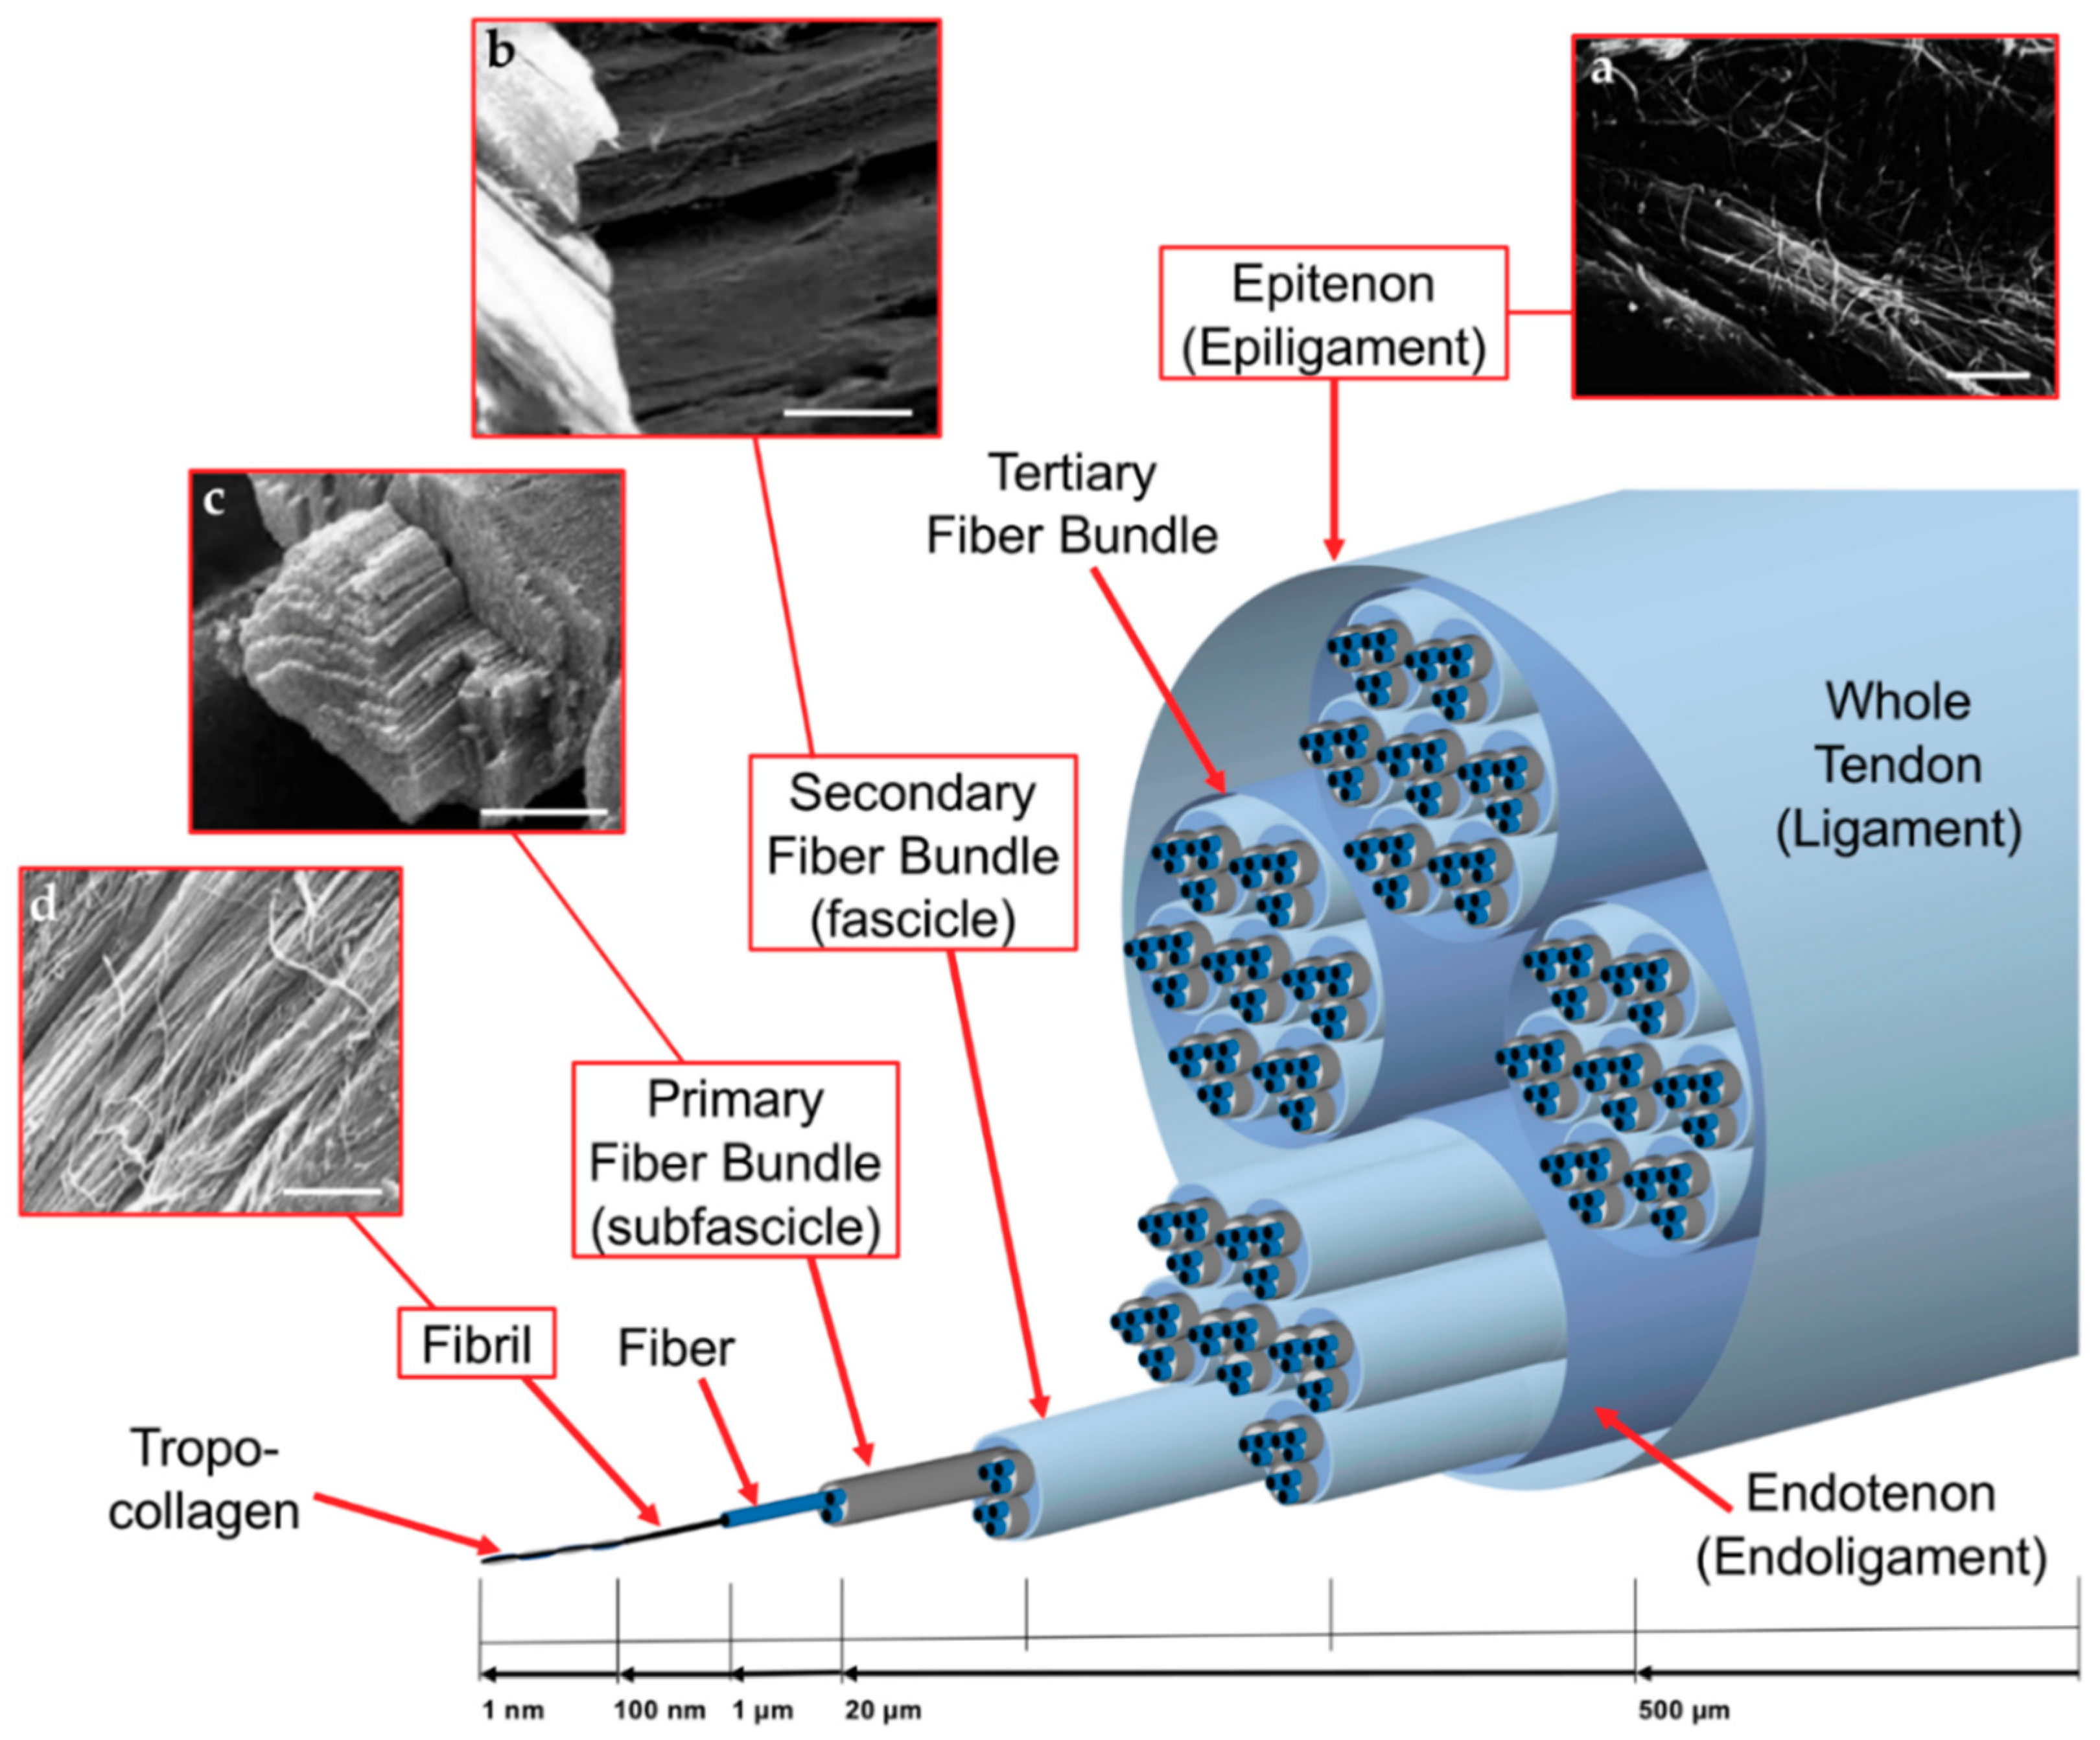 Materials Free Full Text Biofabrication Of Electrospun Scaffolds Surface Mounted Box And Wiring 1407 Chase 11 01963 G001